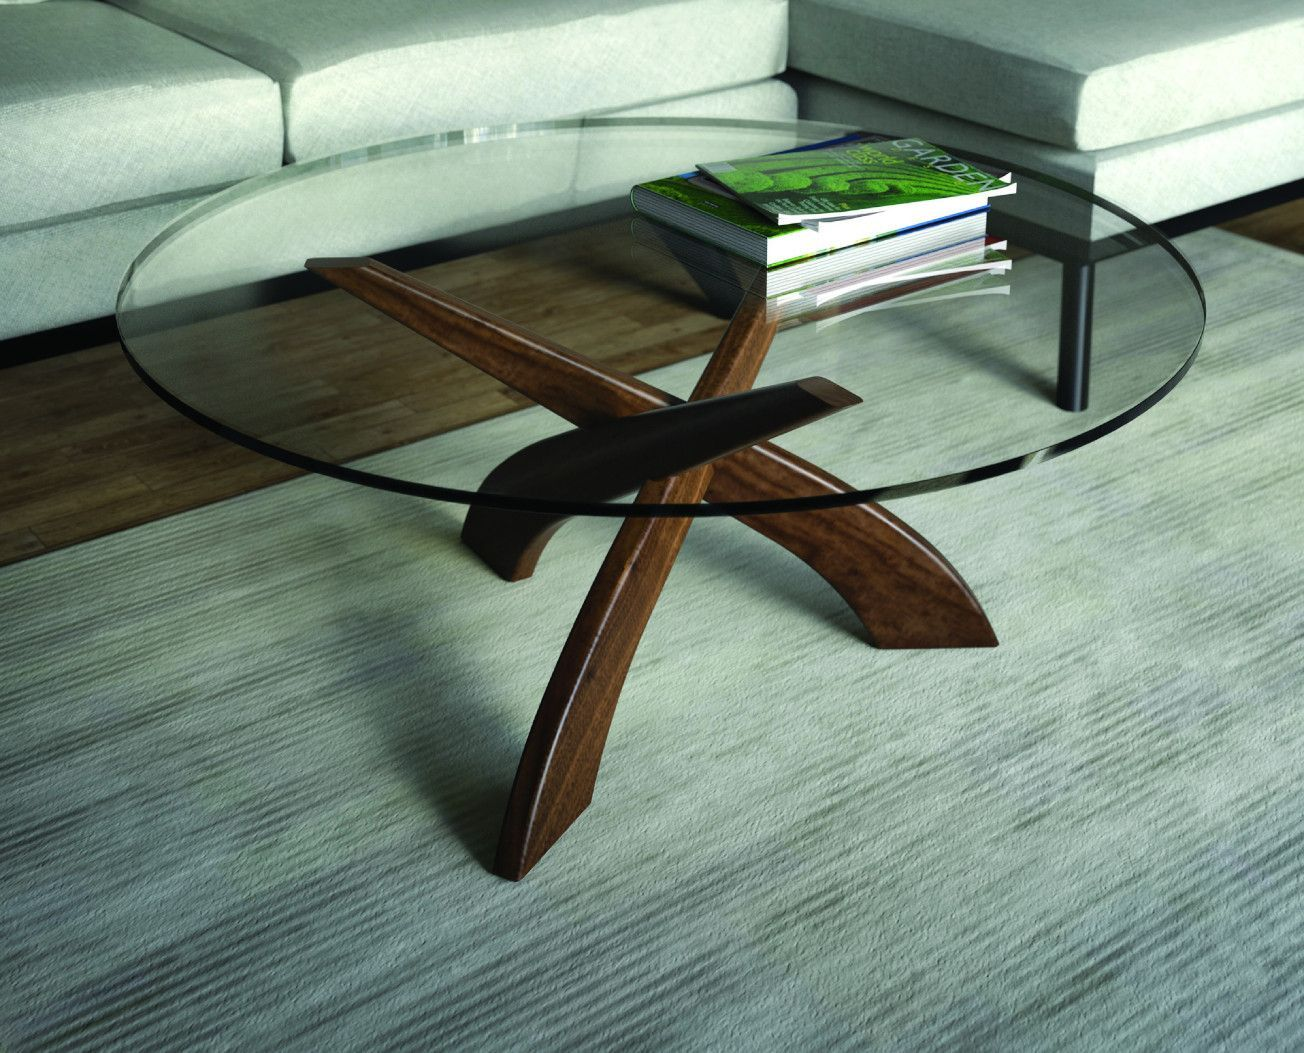 22 Modern Coffee Tables Designs Interesting Best Unique And Classy Round Glass Coffee Table Coffee Table Modern Coffee Table Decor [ 1053 x 1304 Pixel ]